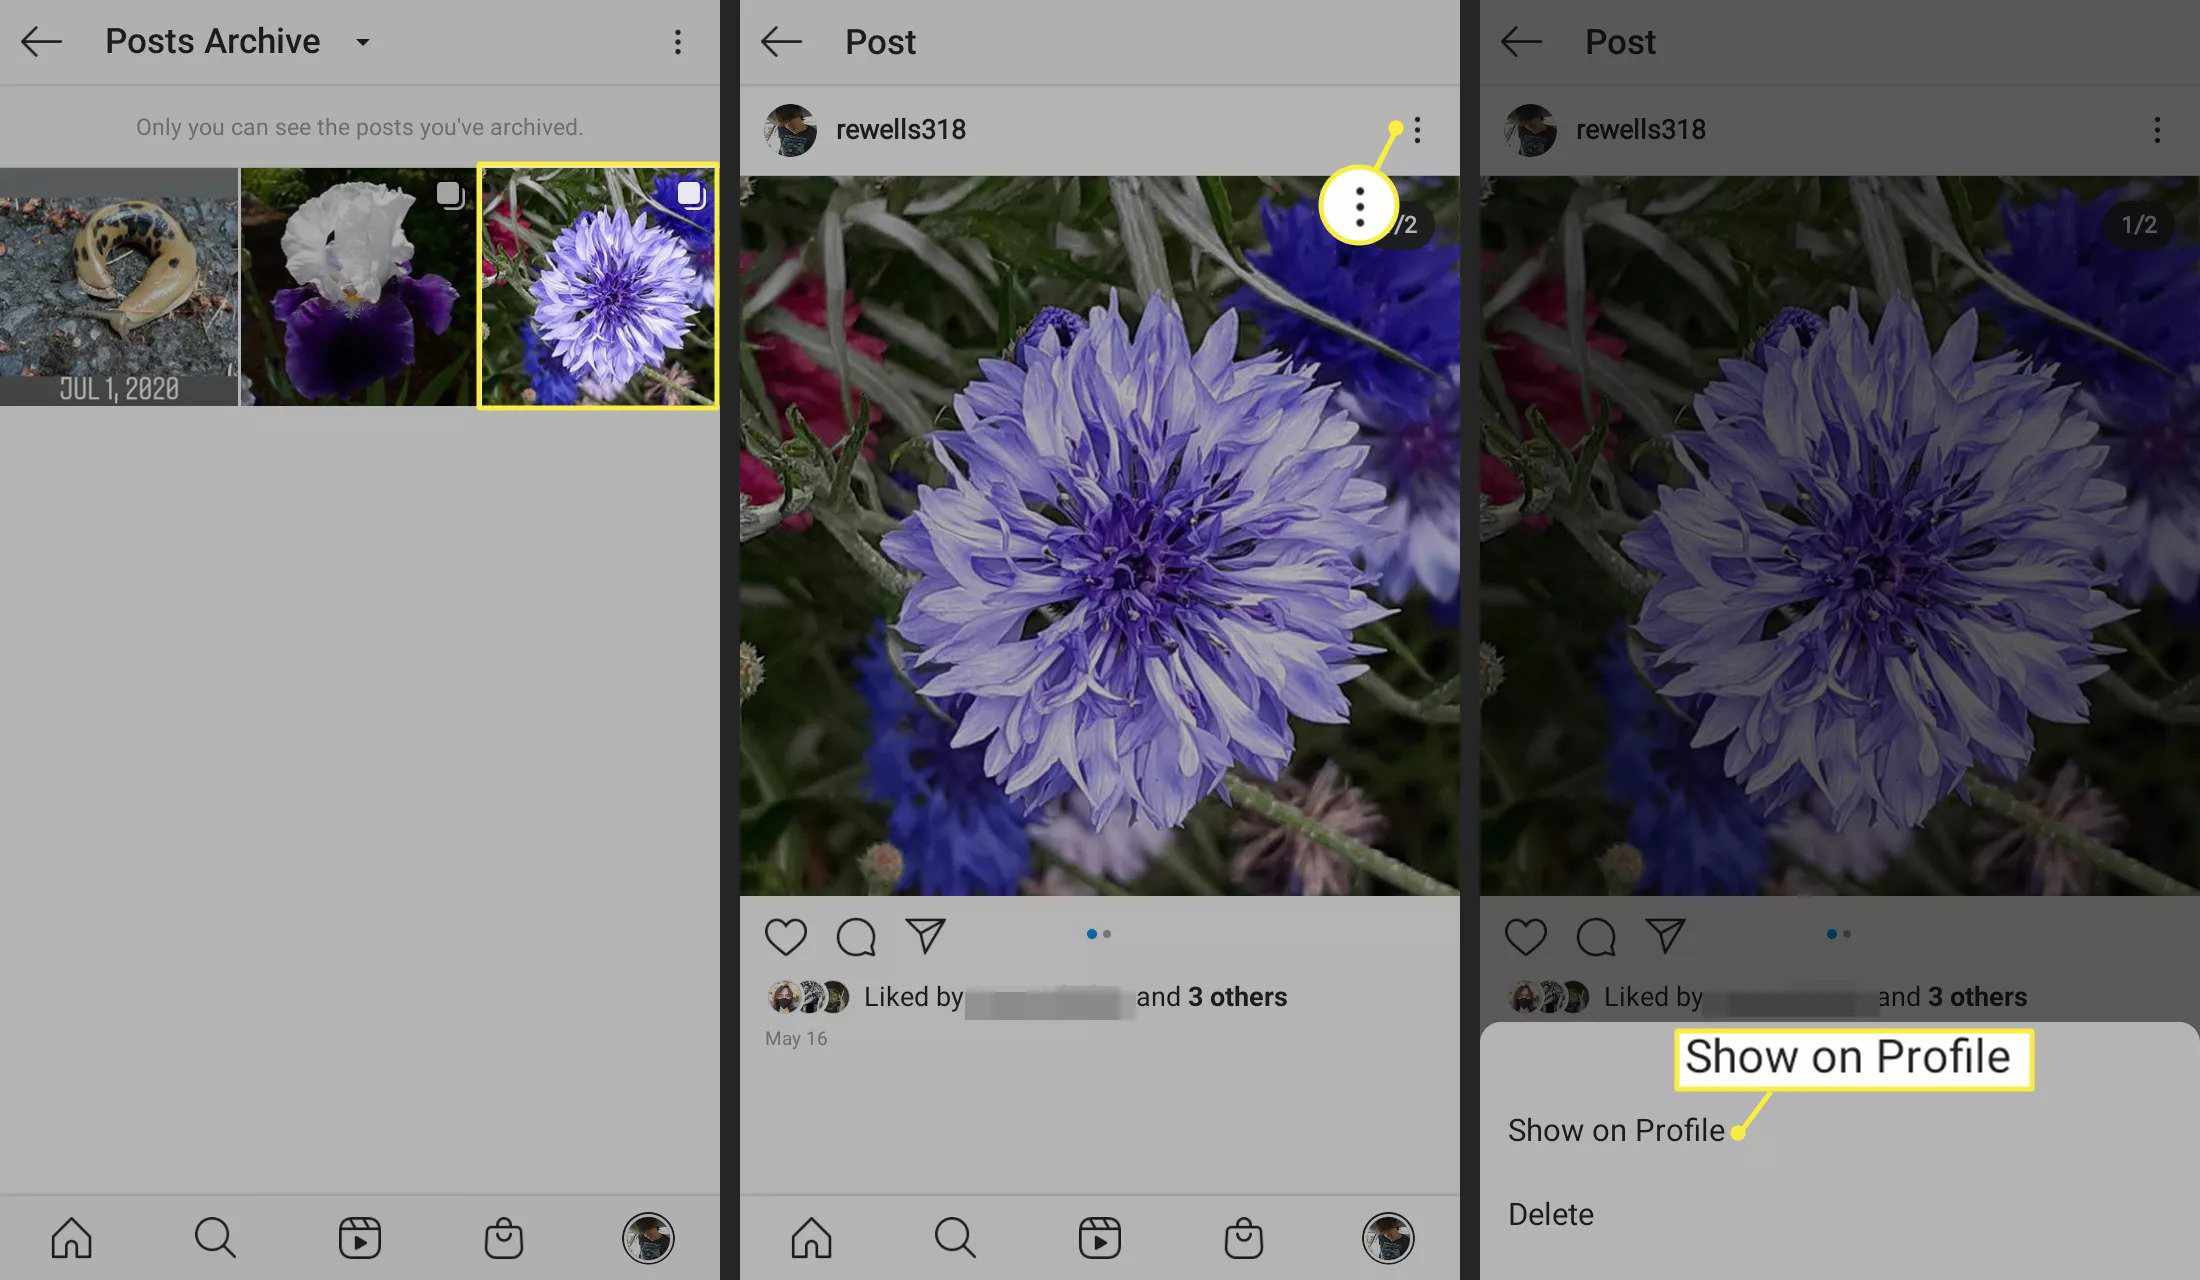 How to Make an Archived Instagram Post Public Again